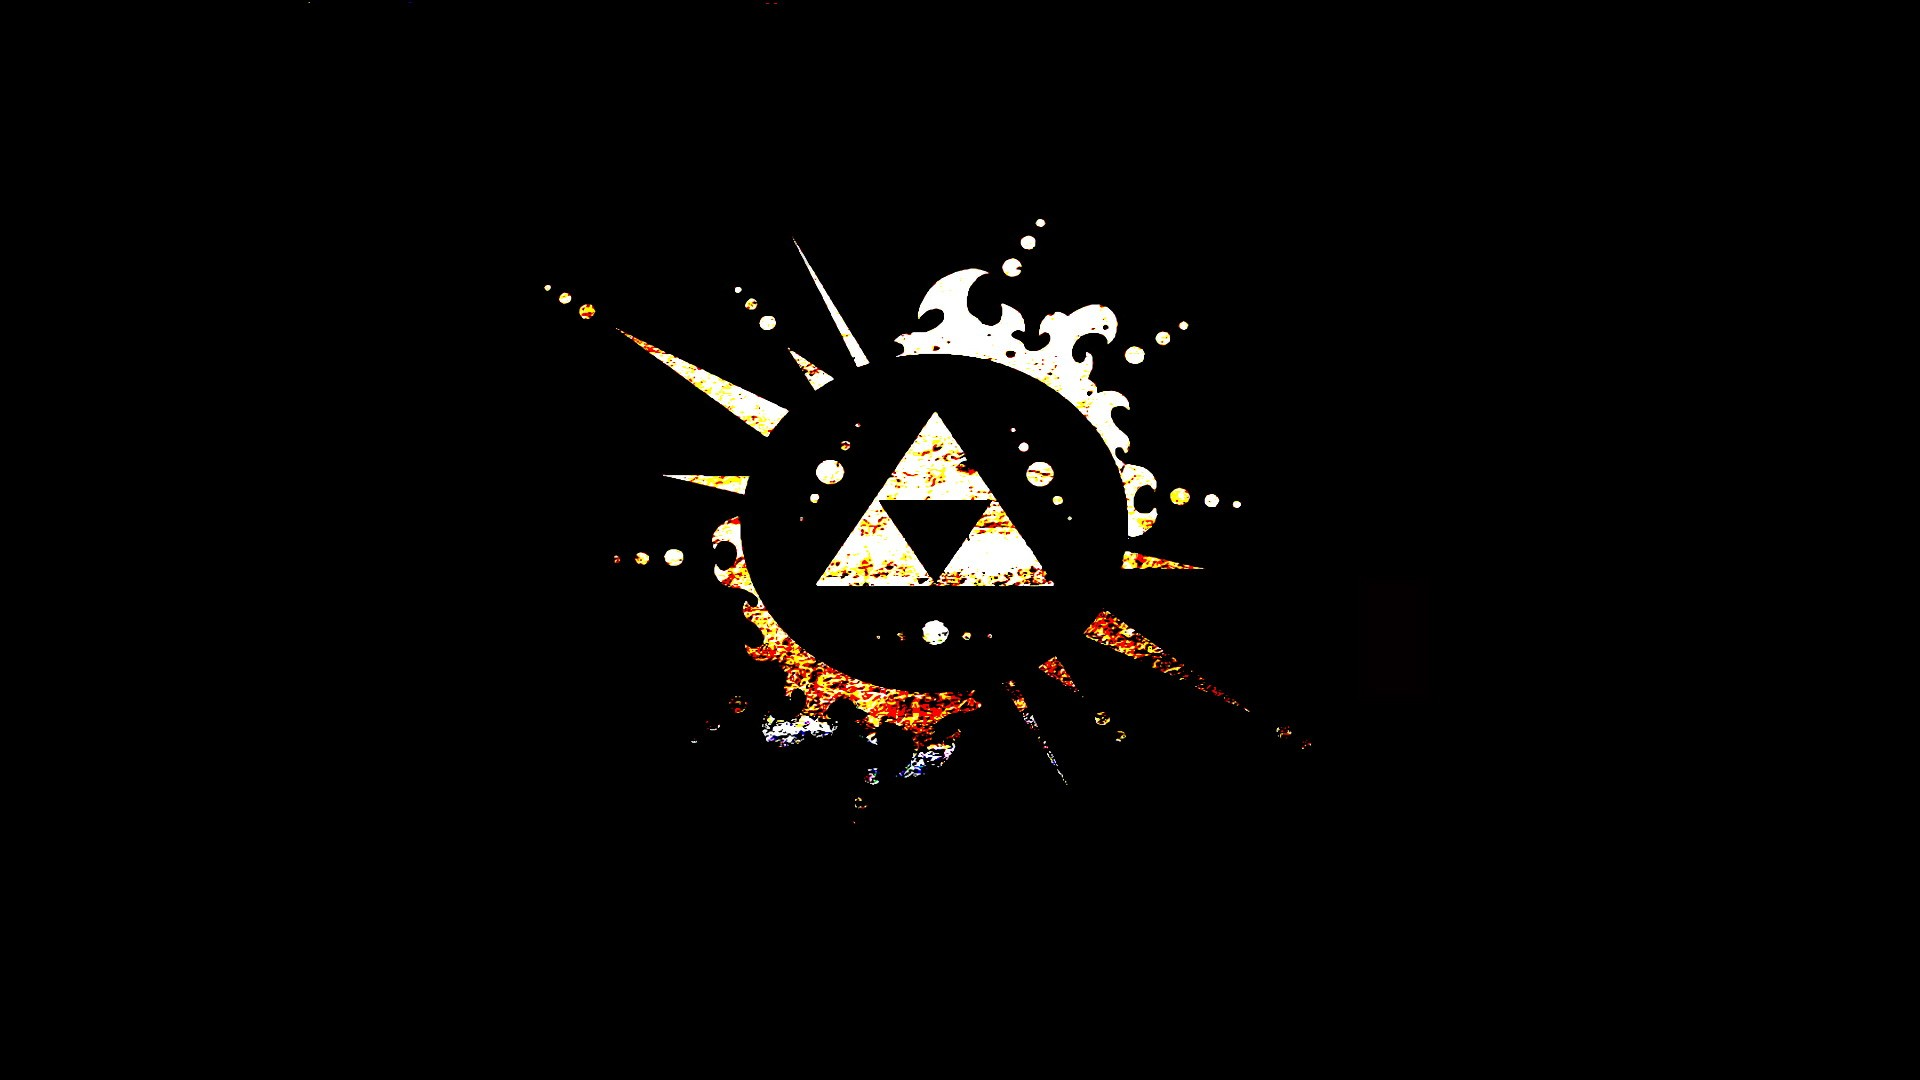 Legend Of Zelda wallpaper 236159 1920x1080